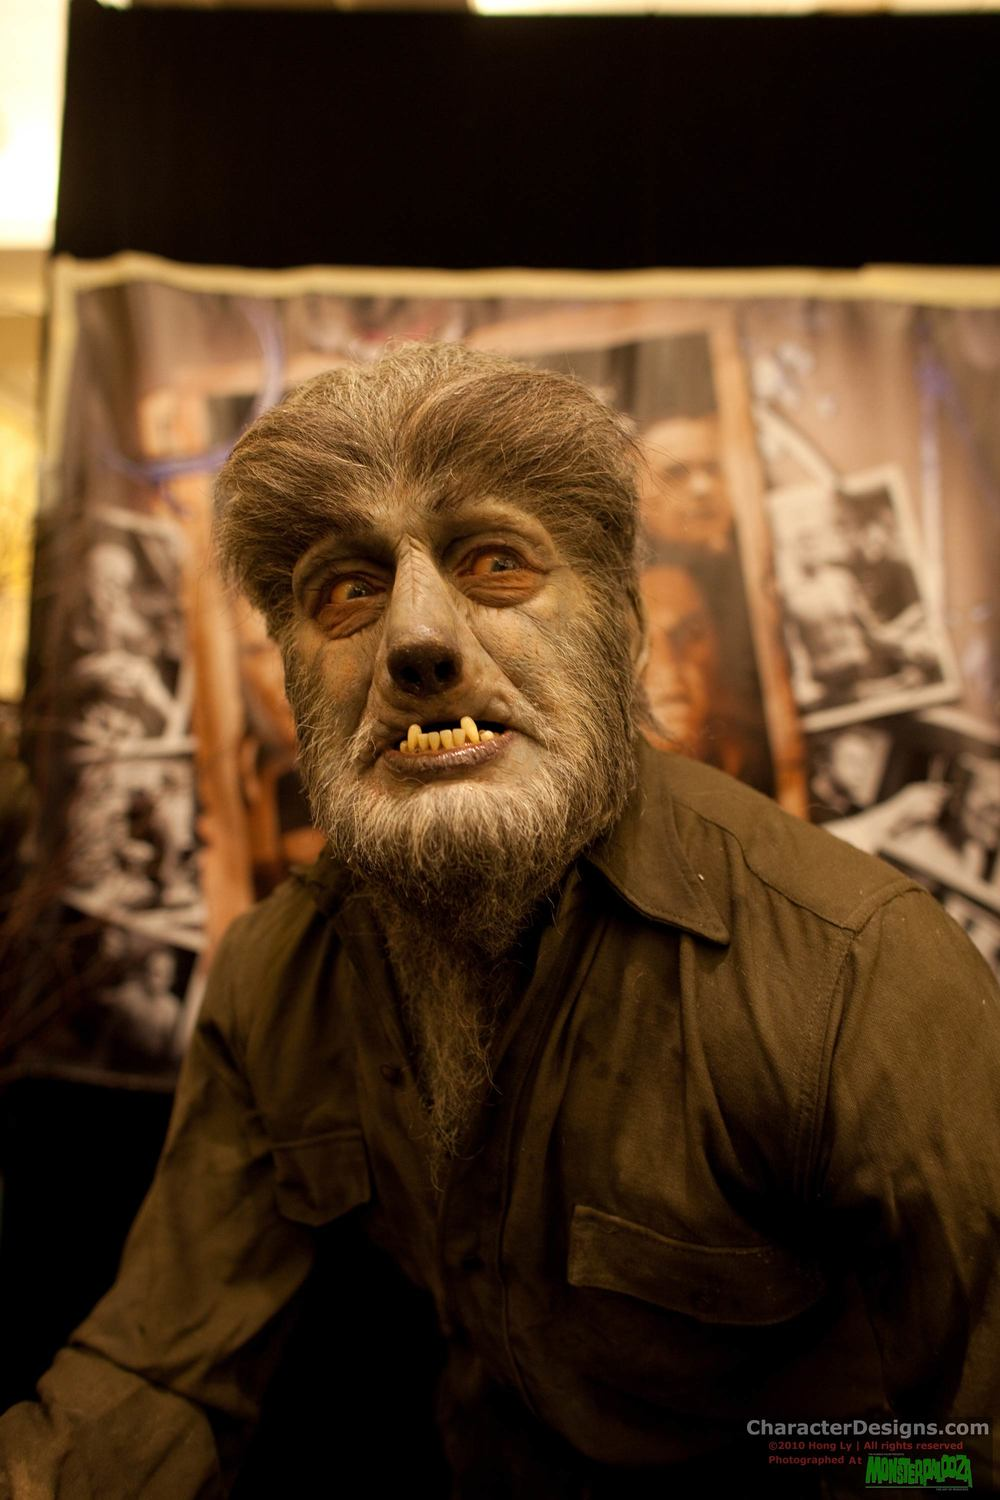 2010_Monsterpalooza_665.jpg